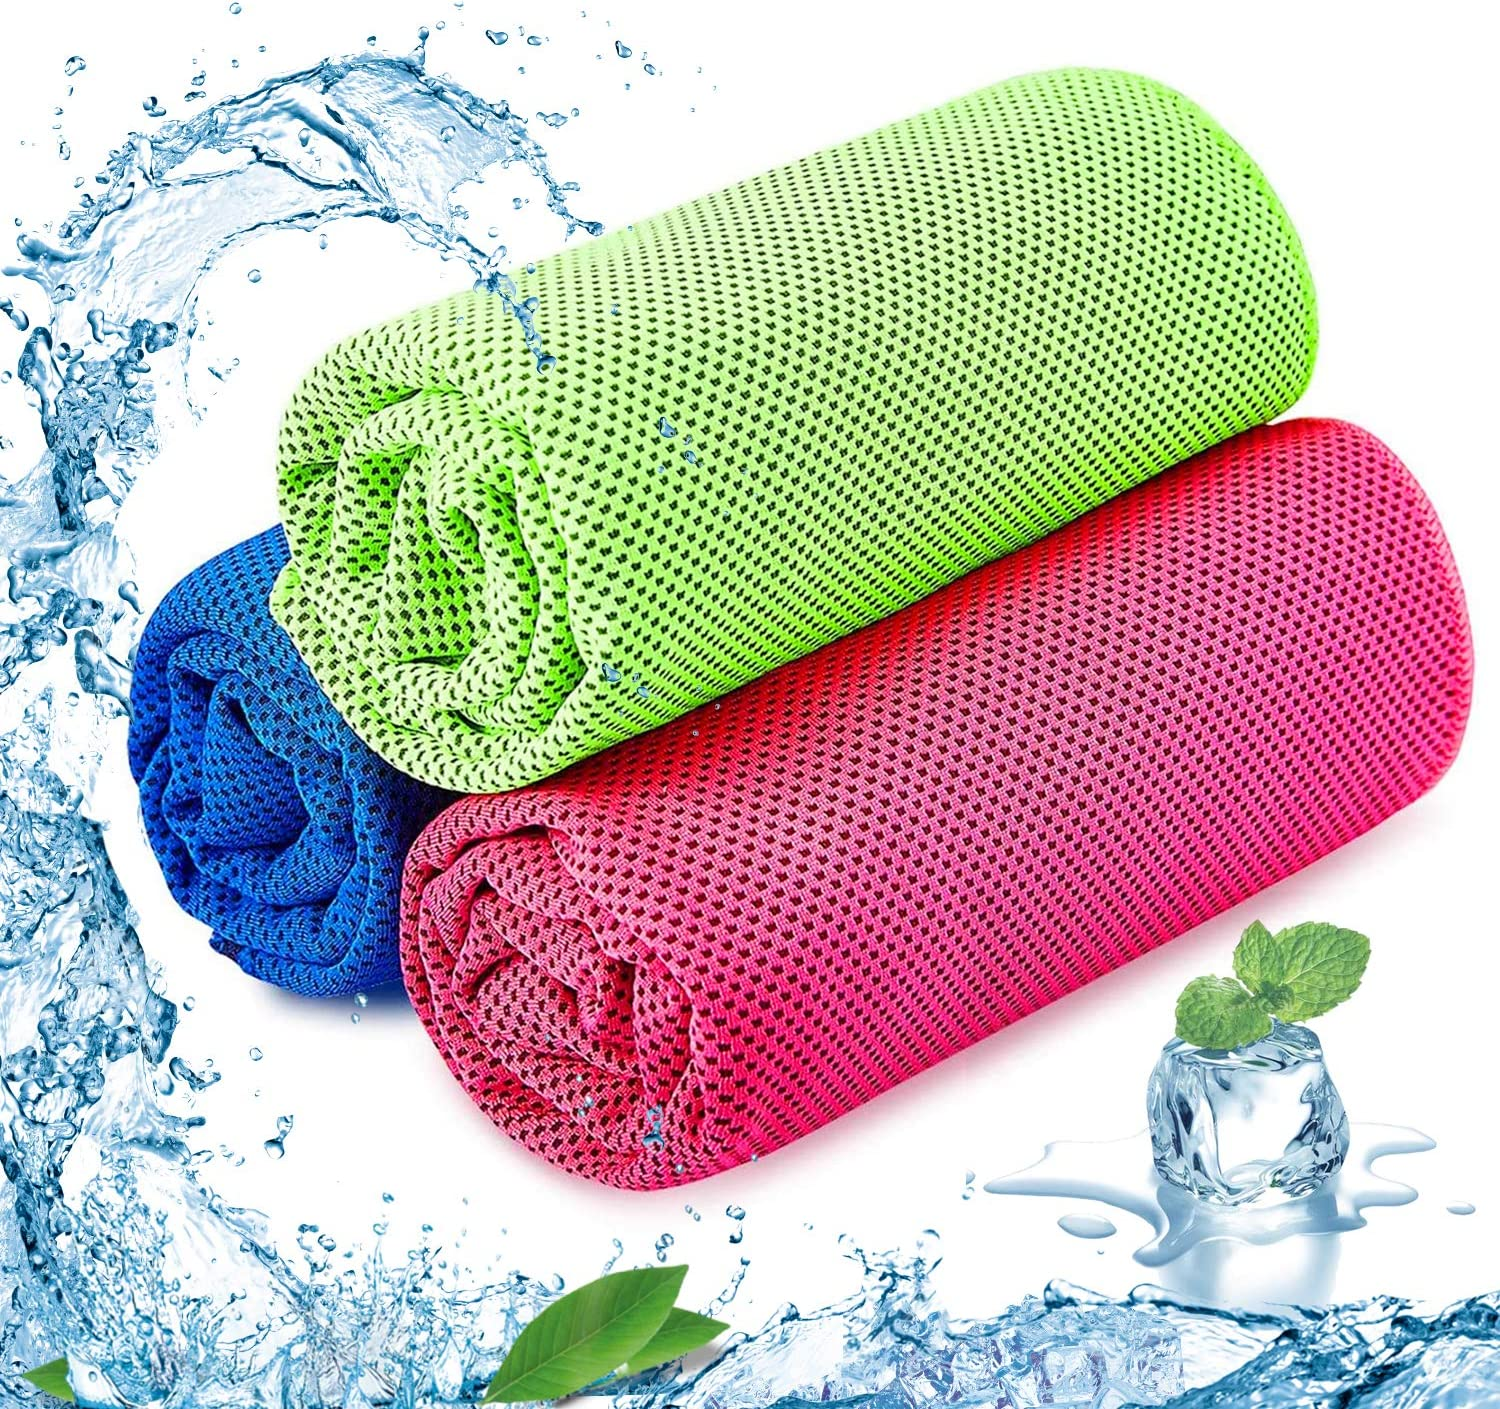 SKL Cooling Towel Pack of 3 Sports Towels Stay Cool Towel for Sports, Swimming, Women, Yoga, Workout, Athletes, Gym, Neck, Golf, Travel 40 inch x 12 inch (Blue-Red-Green)